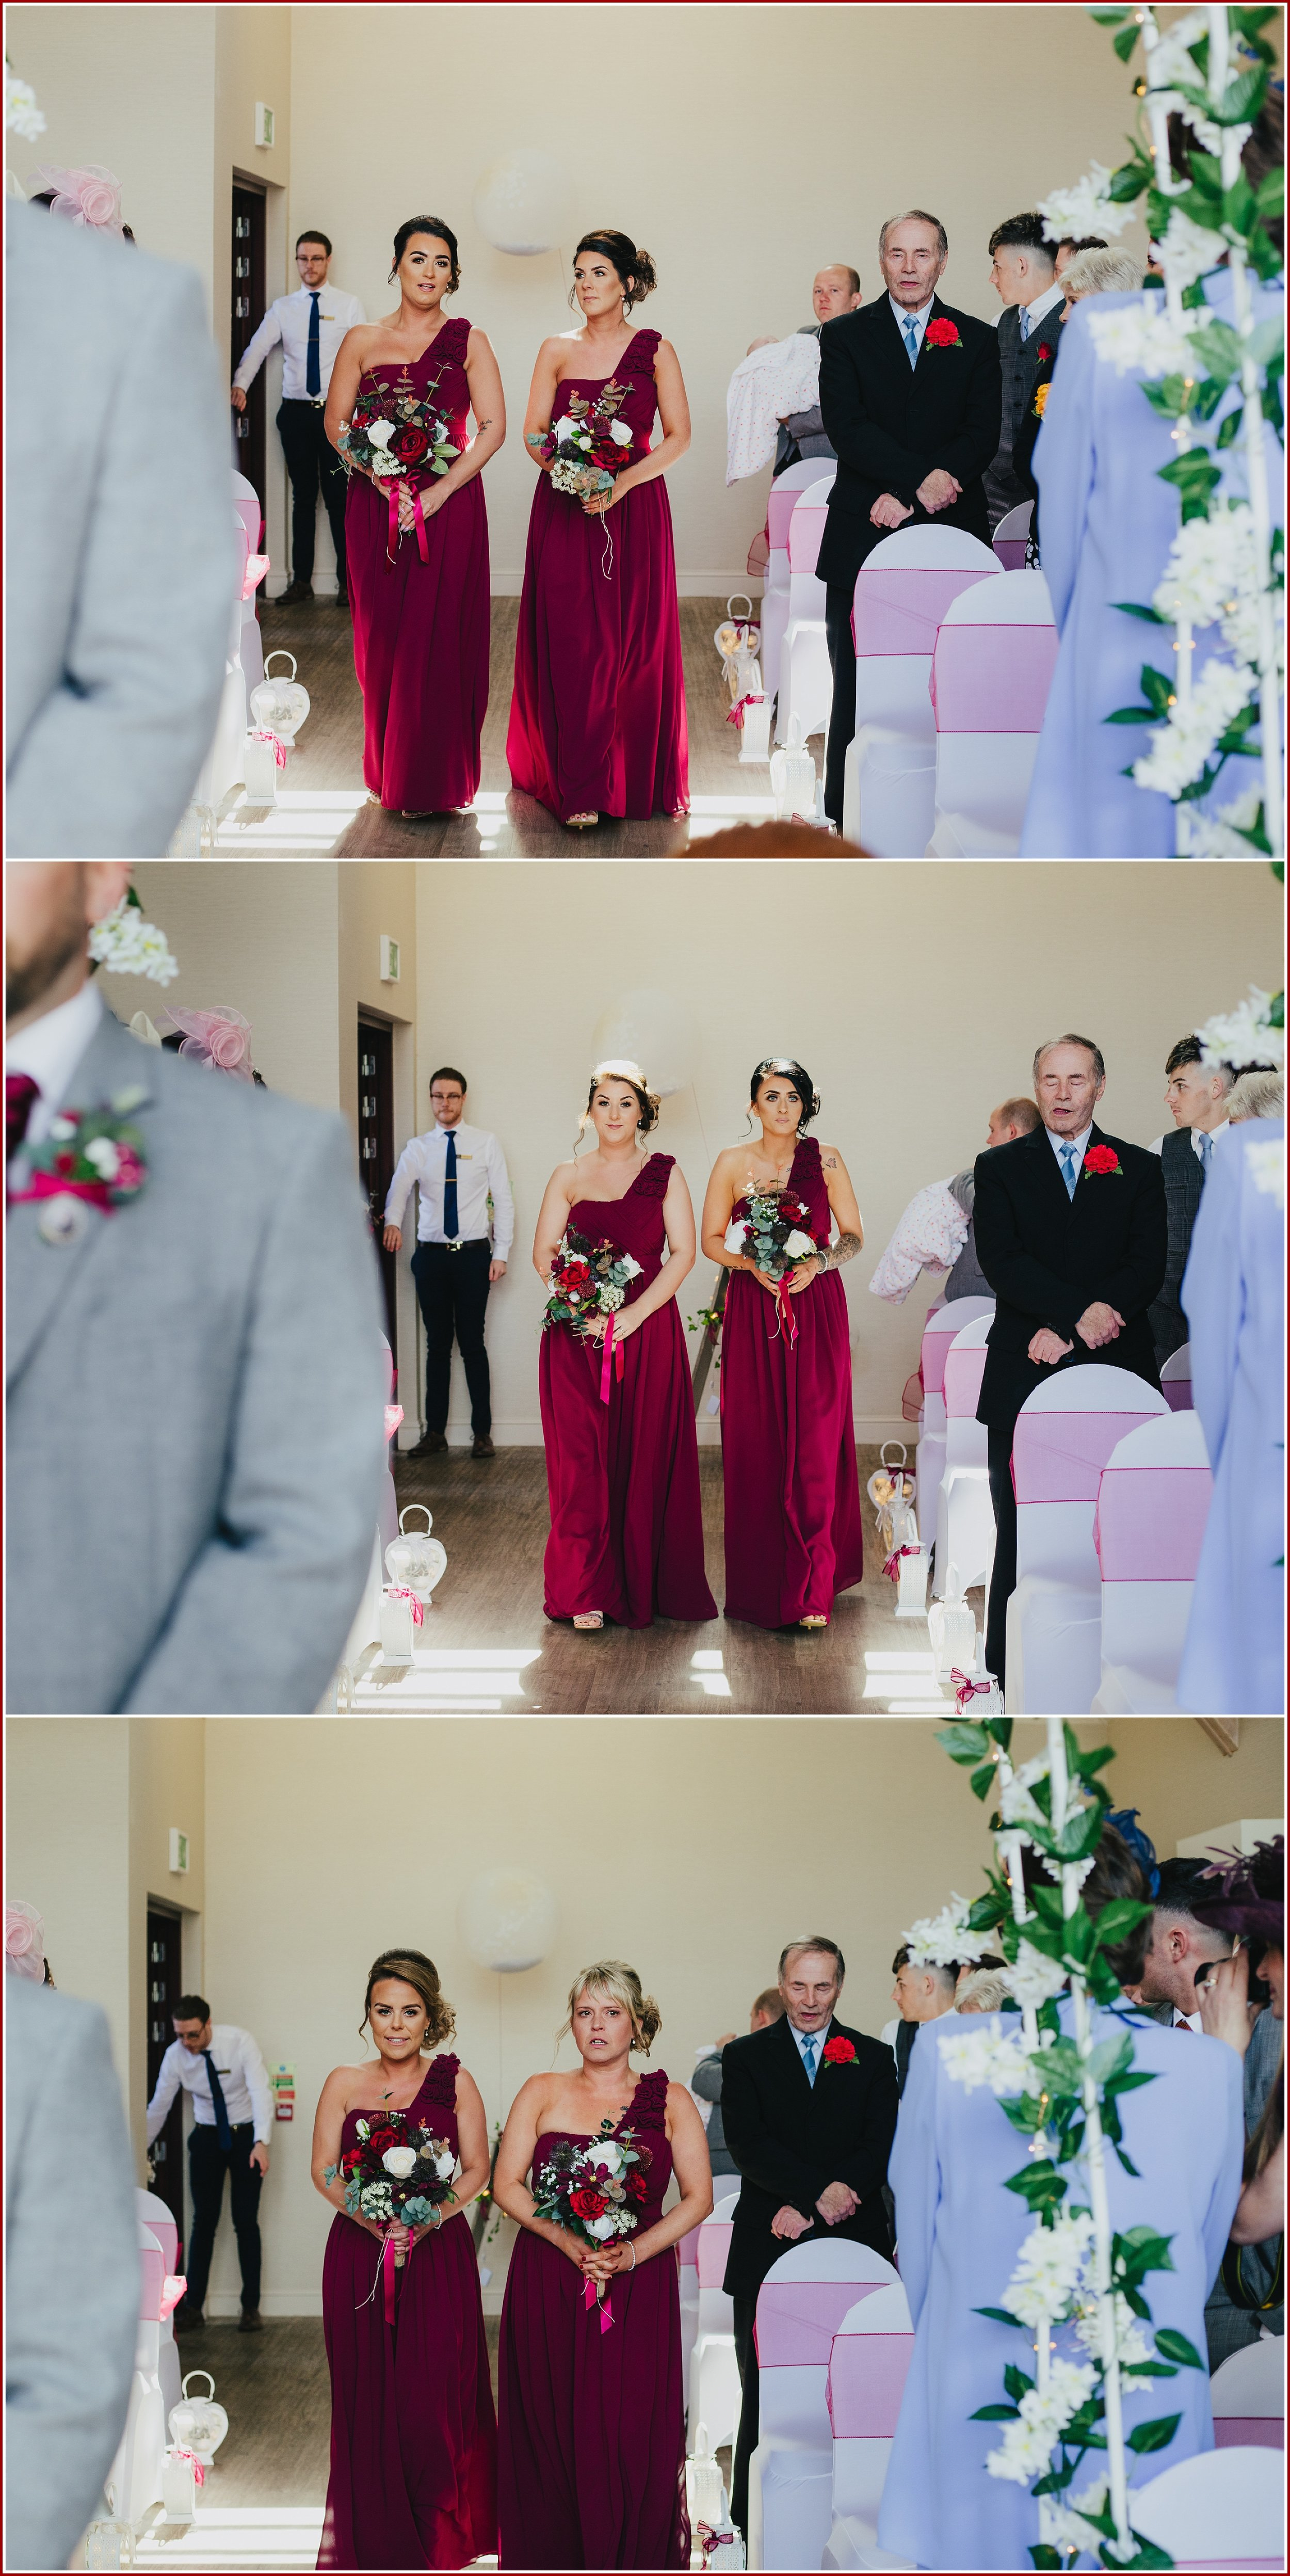 Kirsty_Brown_Wedding_Photography_0074.jpg